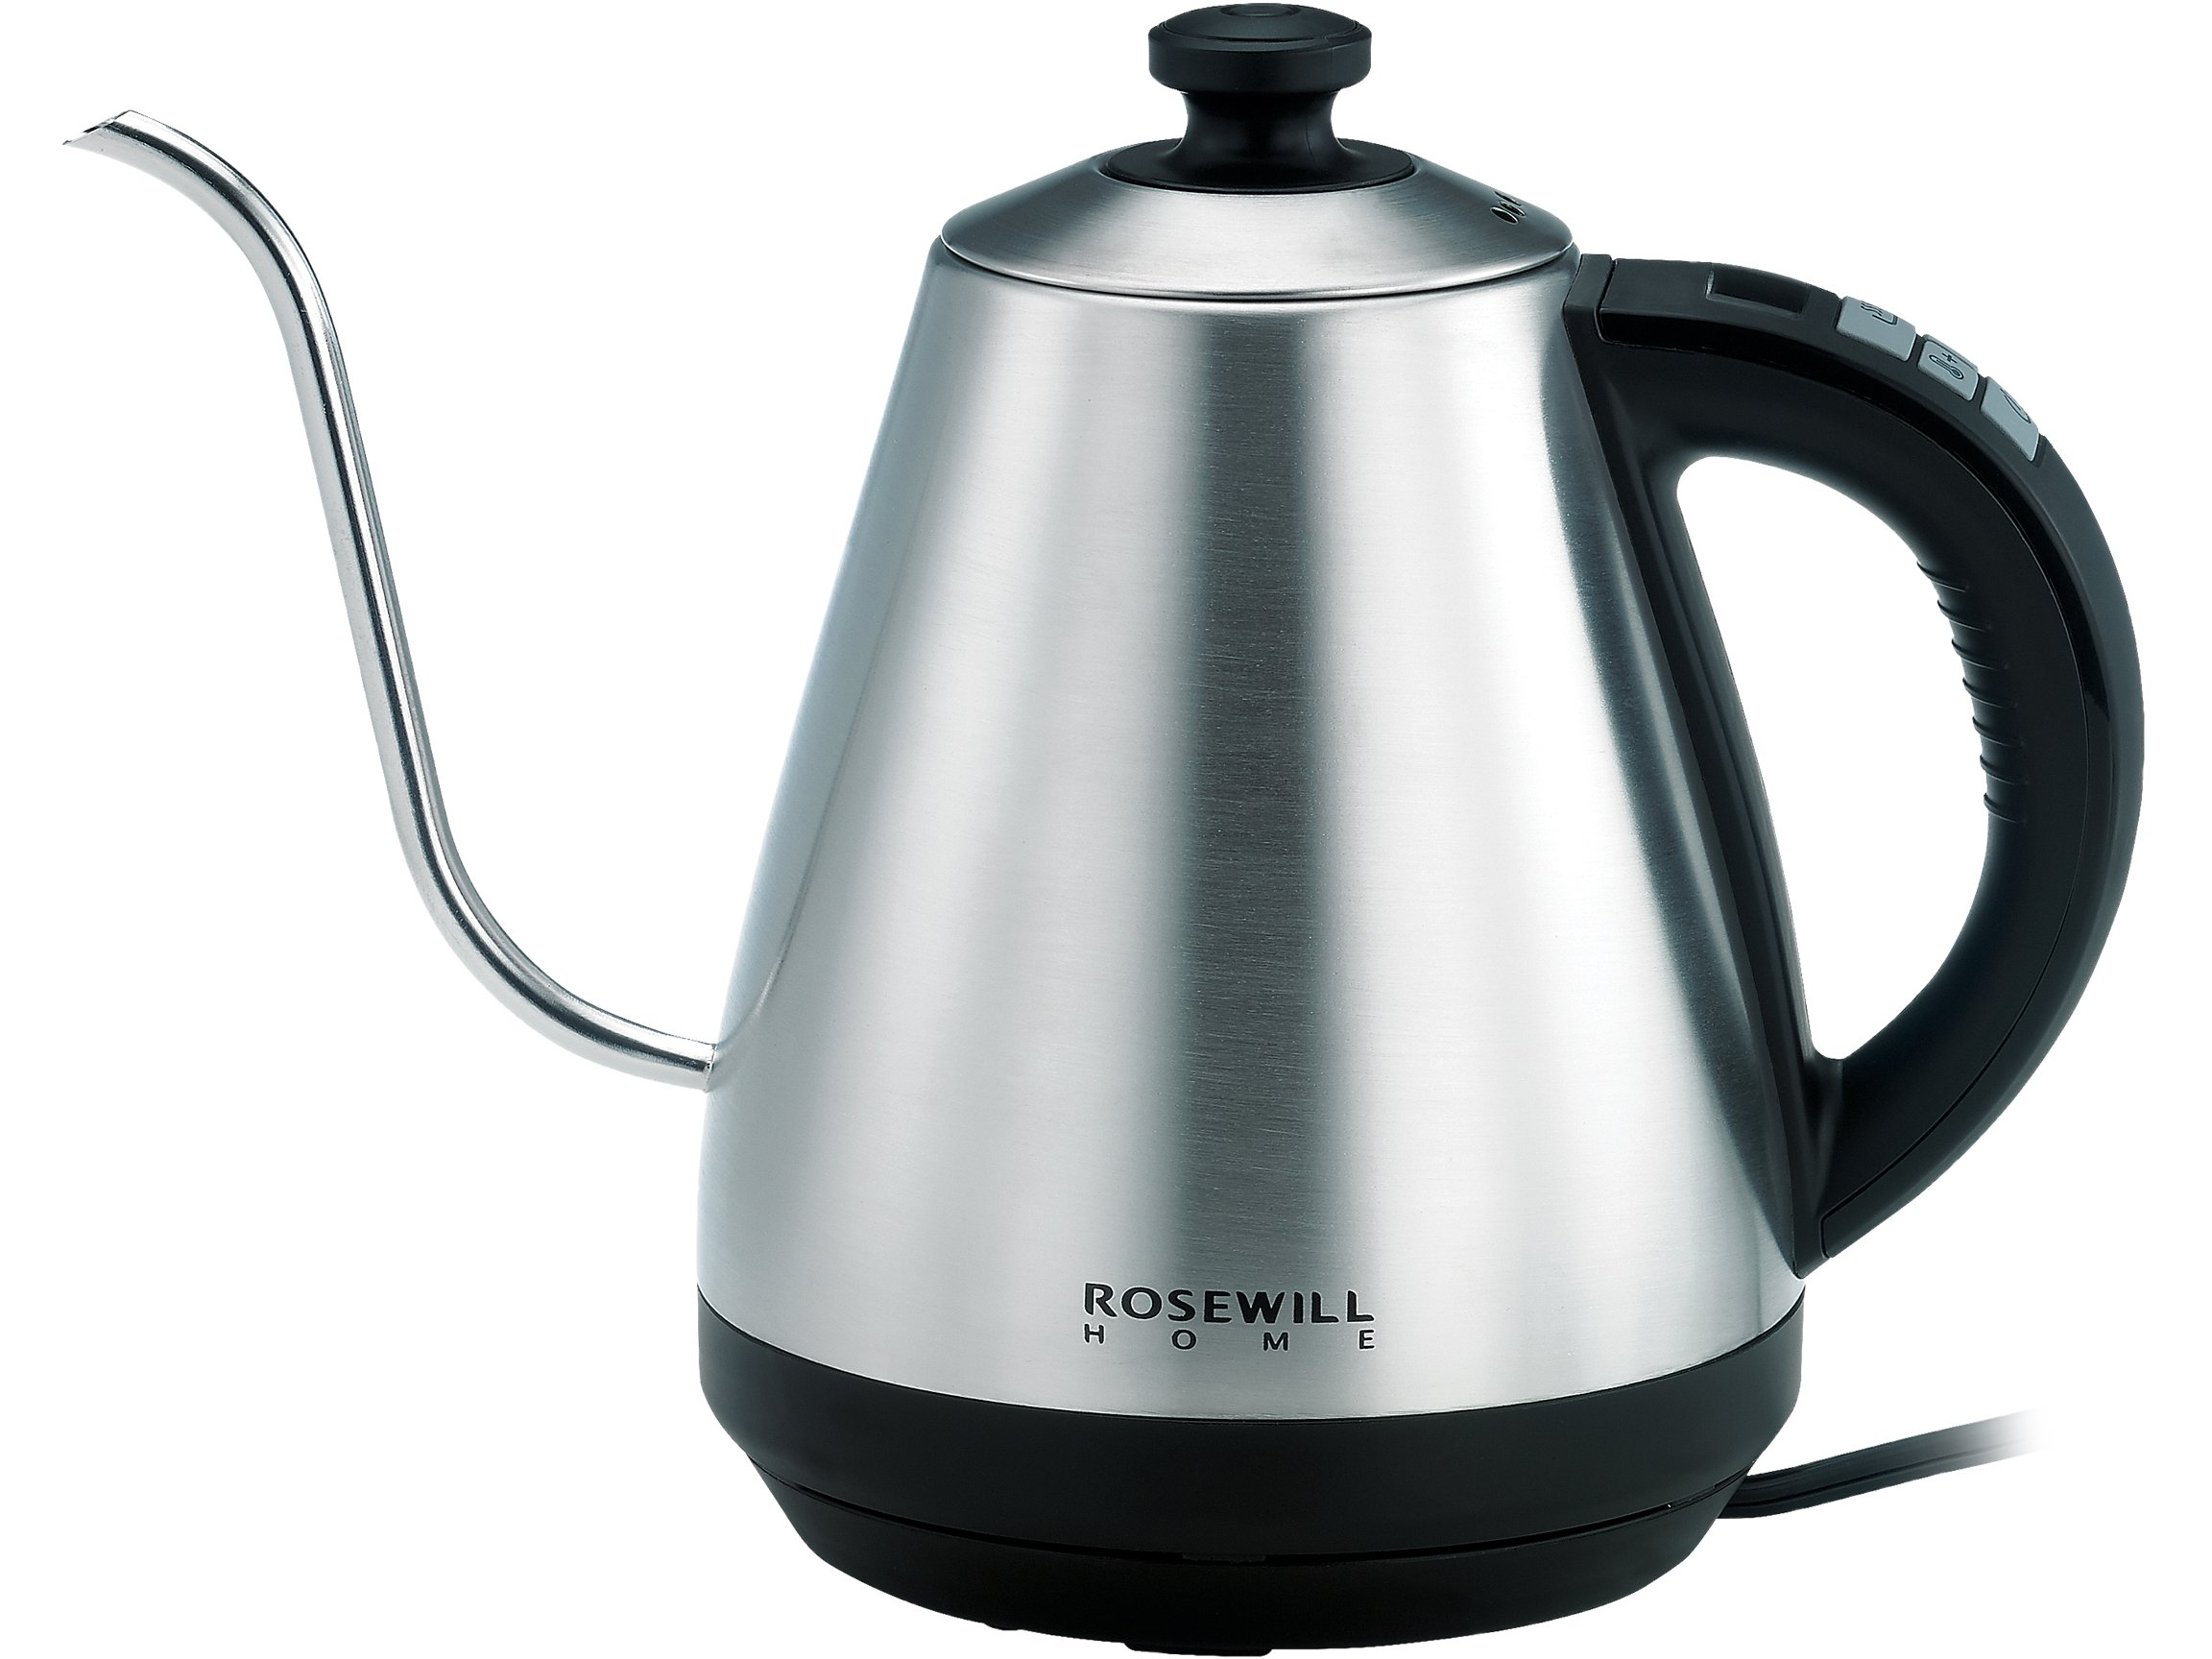 Rosewill Pour Over Coffee Kettle, Electric Gooseneck Kettle, Coffee Temperature Control with Variable Temperature Settings, Stainless Steel,  RHKT-17002